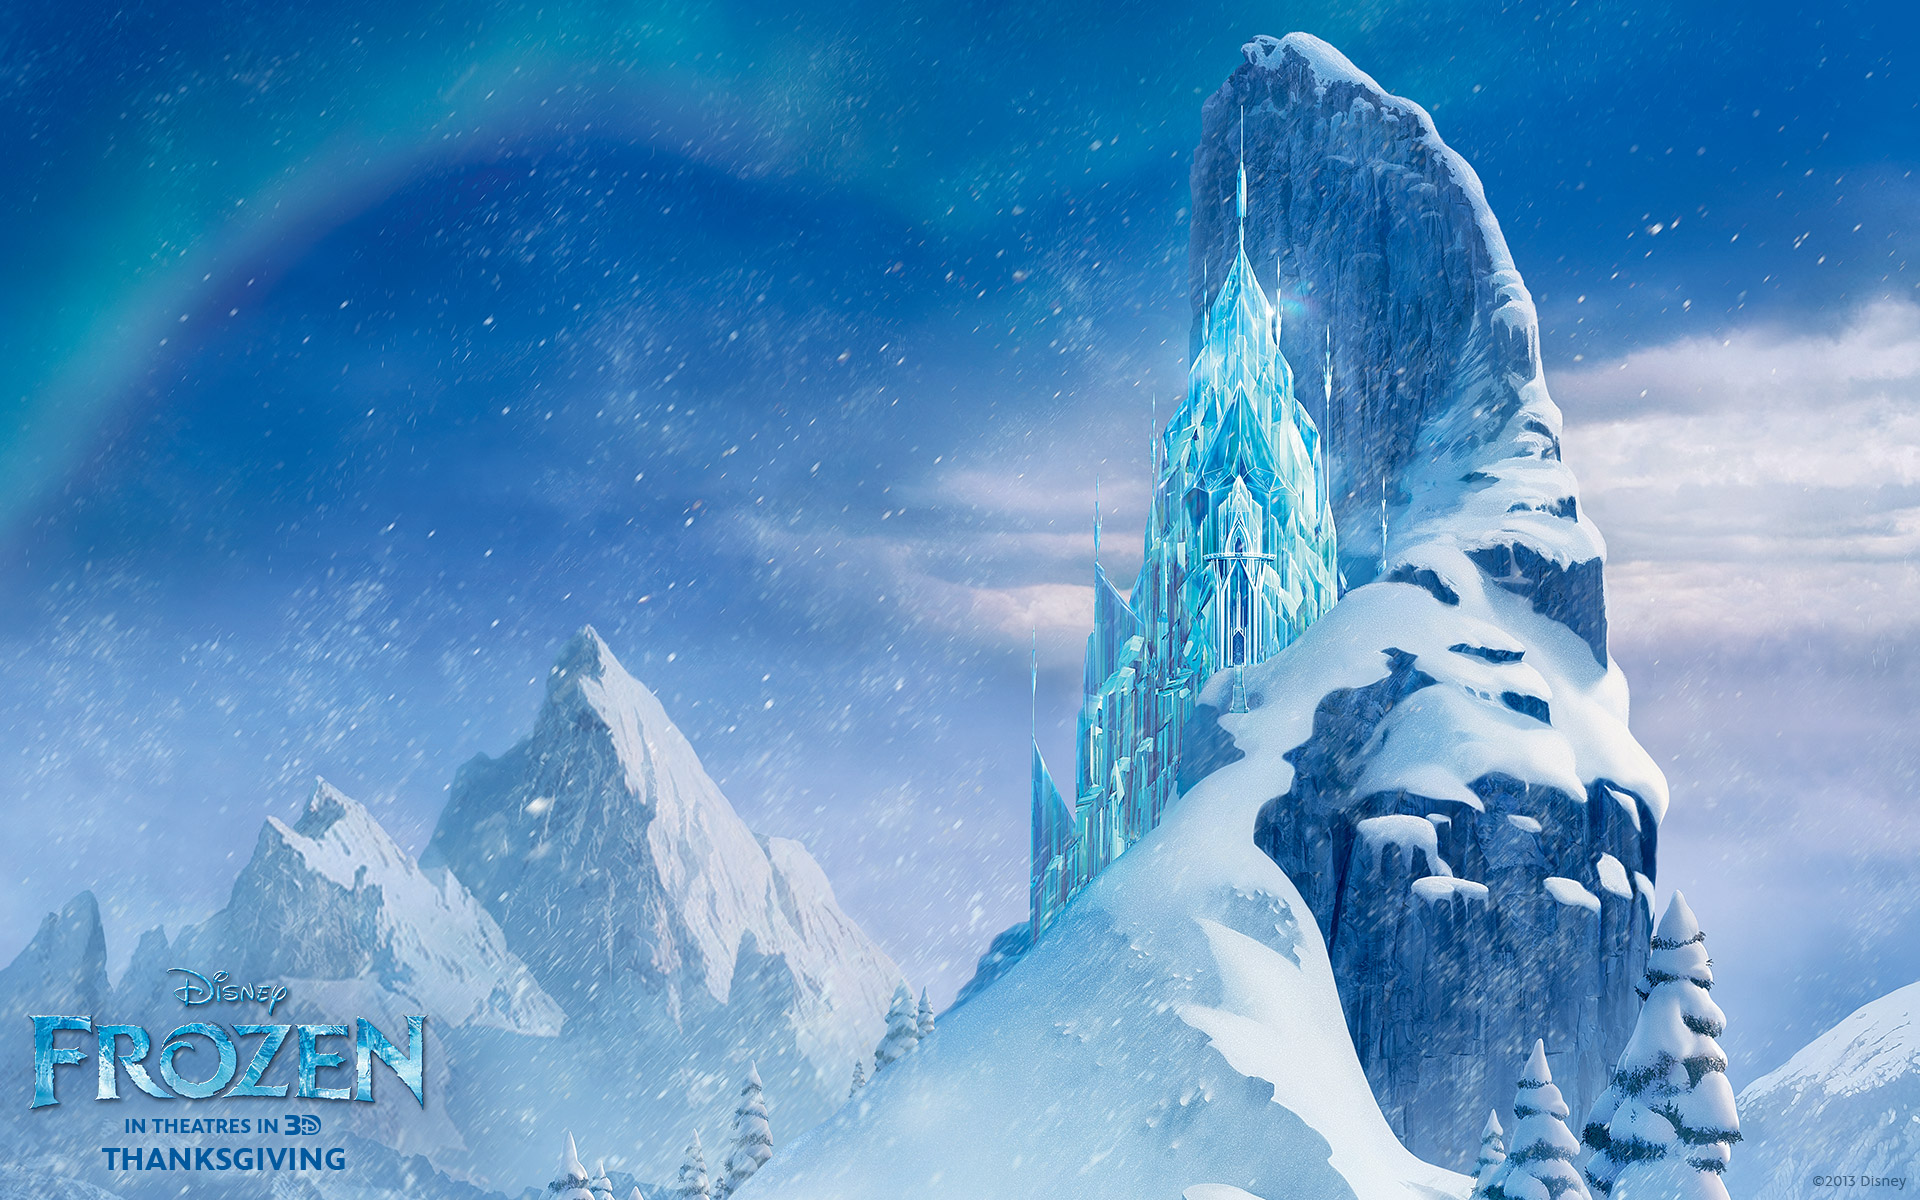 free frozen wallpaper 19580 1920x1200 px ~ hdwallsource